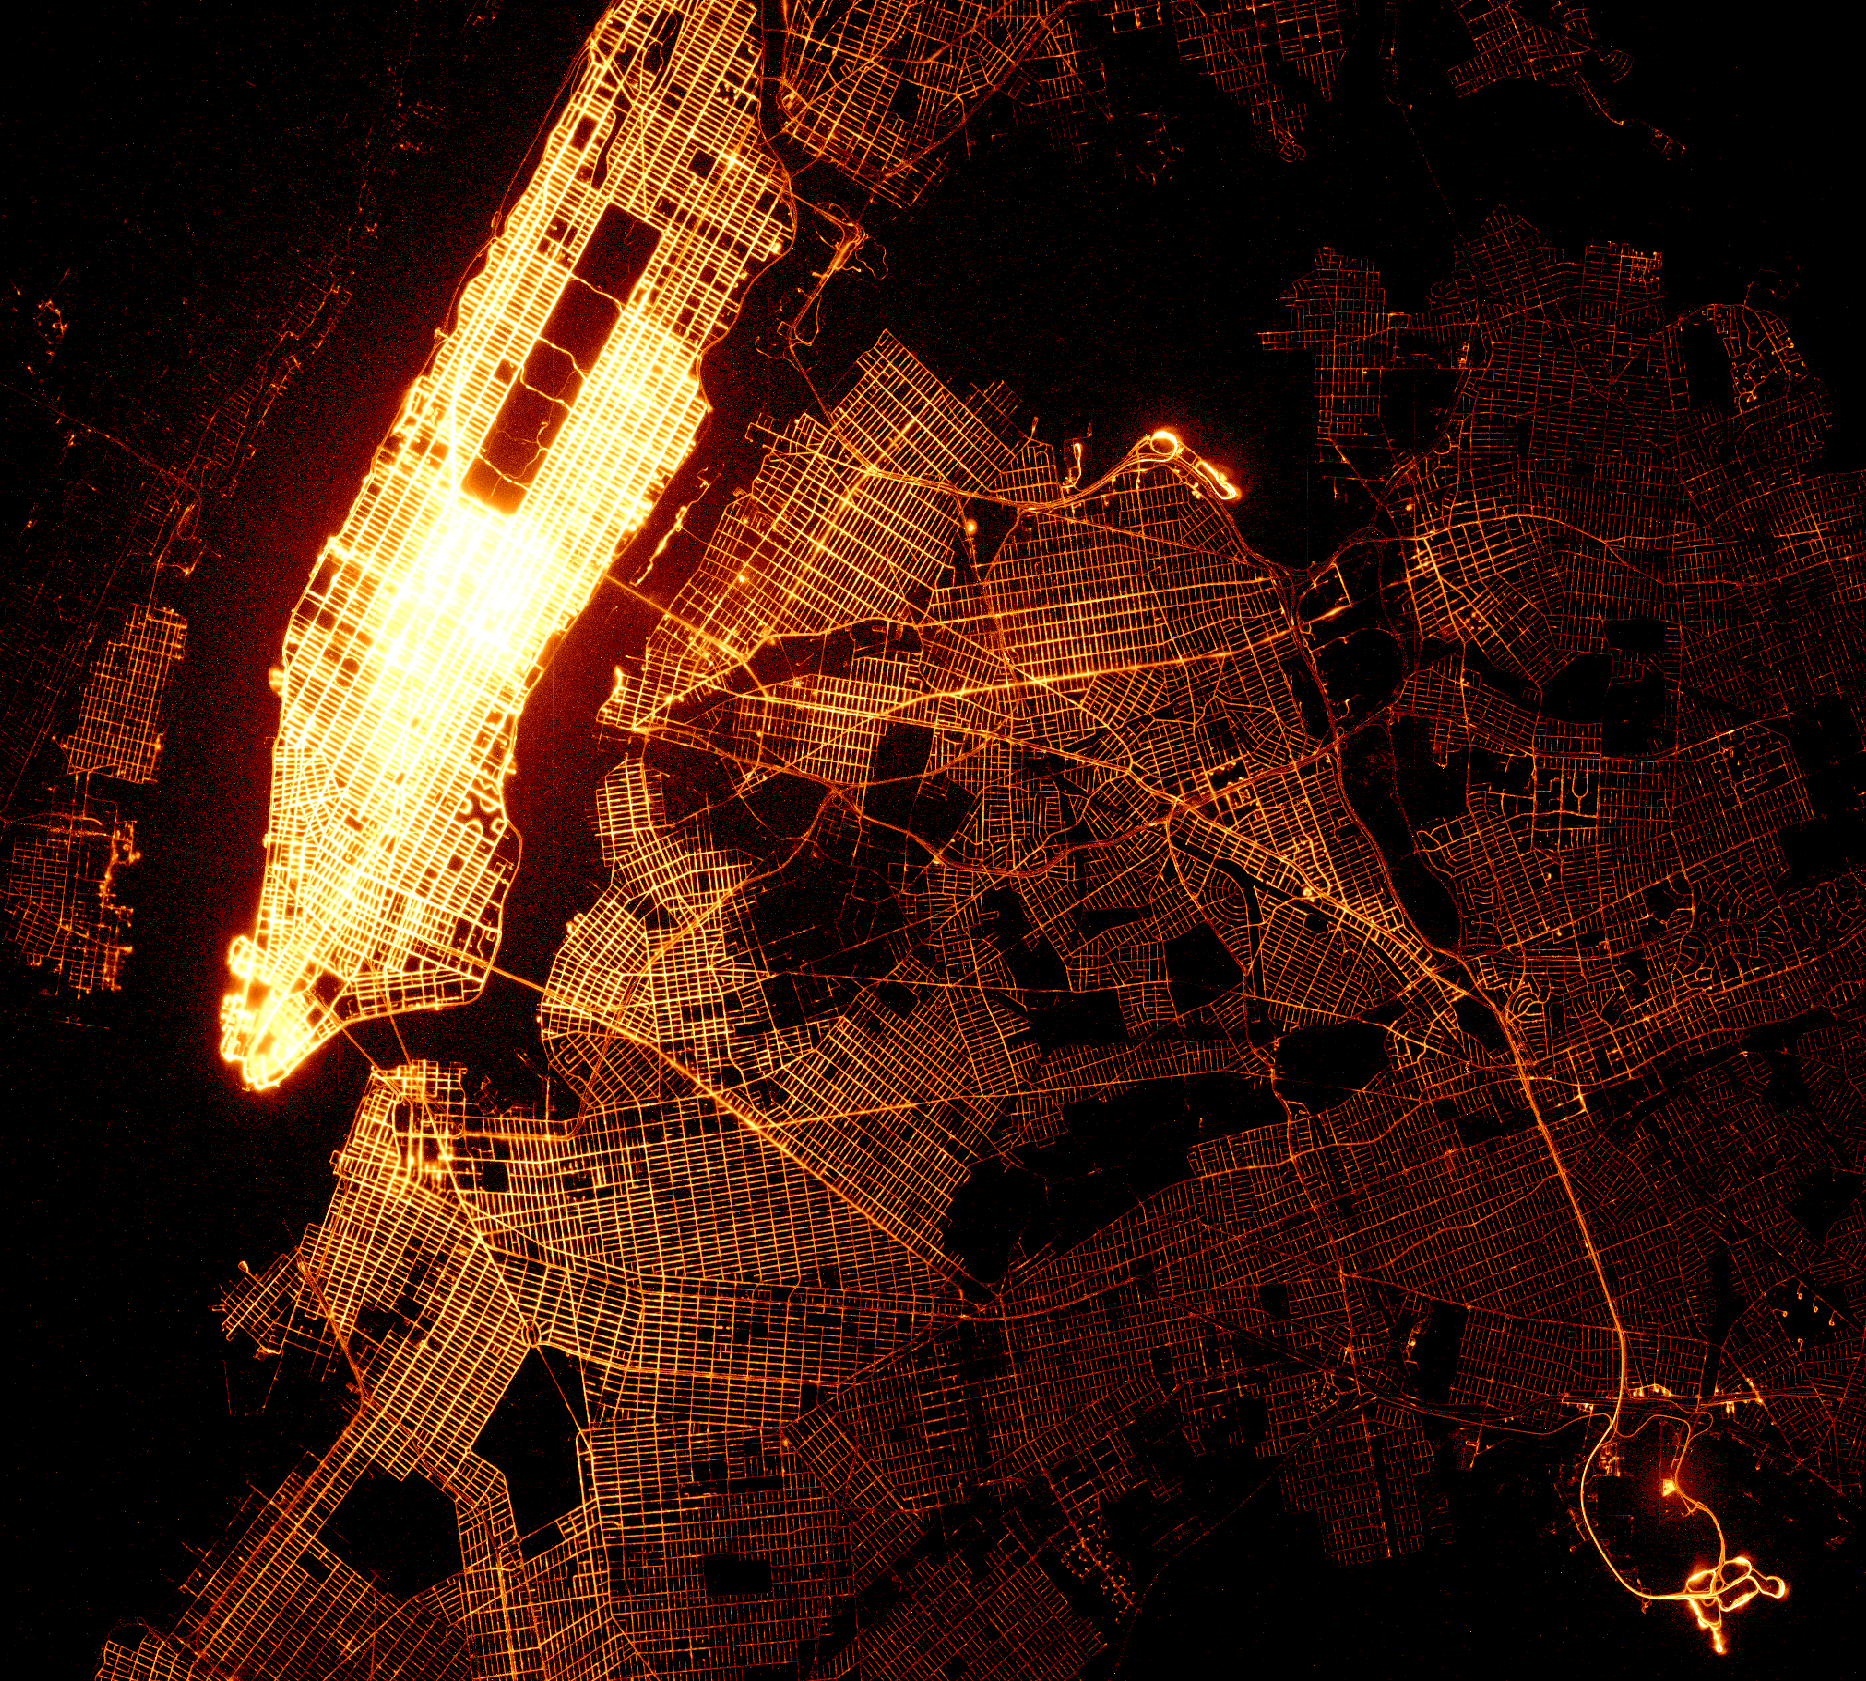 1,008,842,985 taxi dropoff location visualized in 1 second with vaex.